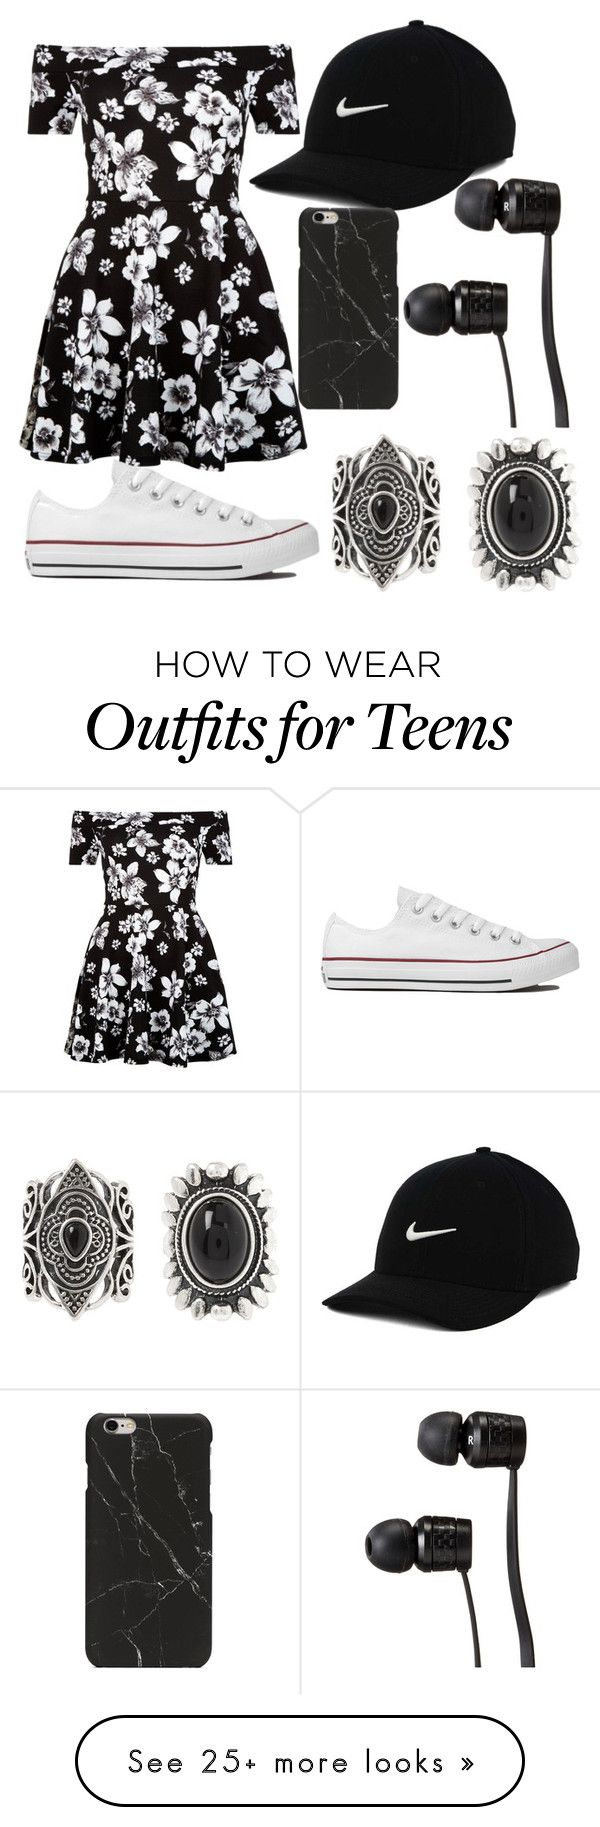 """Untitled #679"" by mriss-abbrie on Polyvore featuring New Look, Converse, NIKE and Vans"